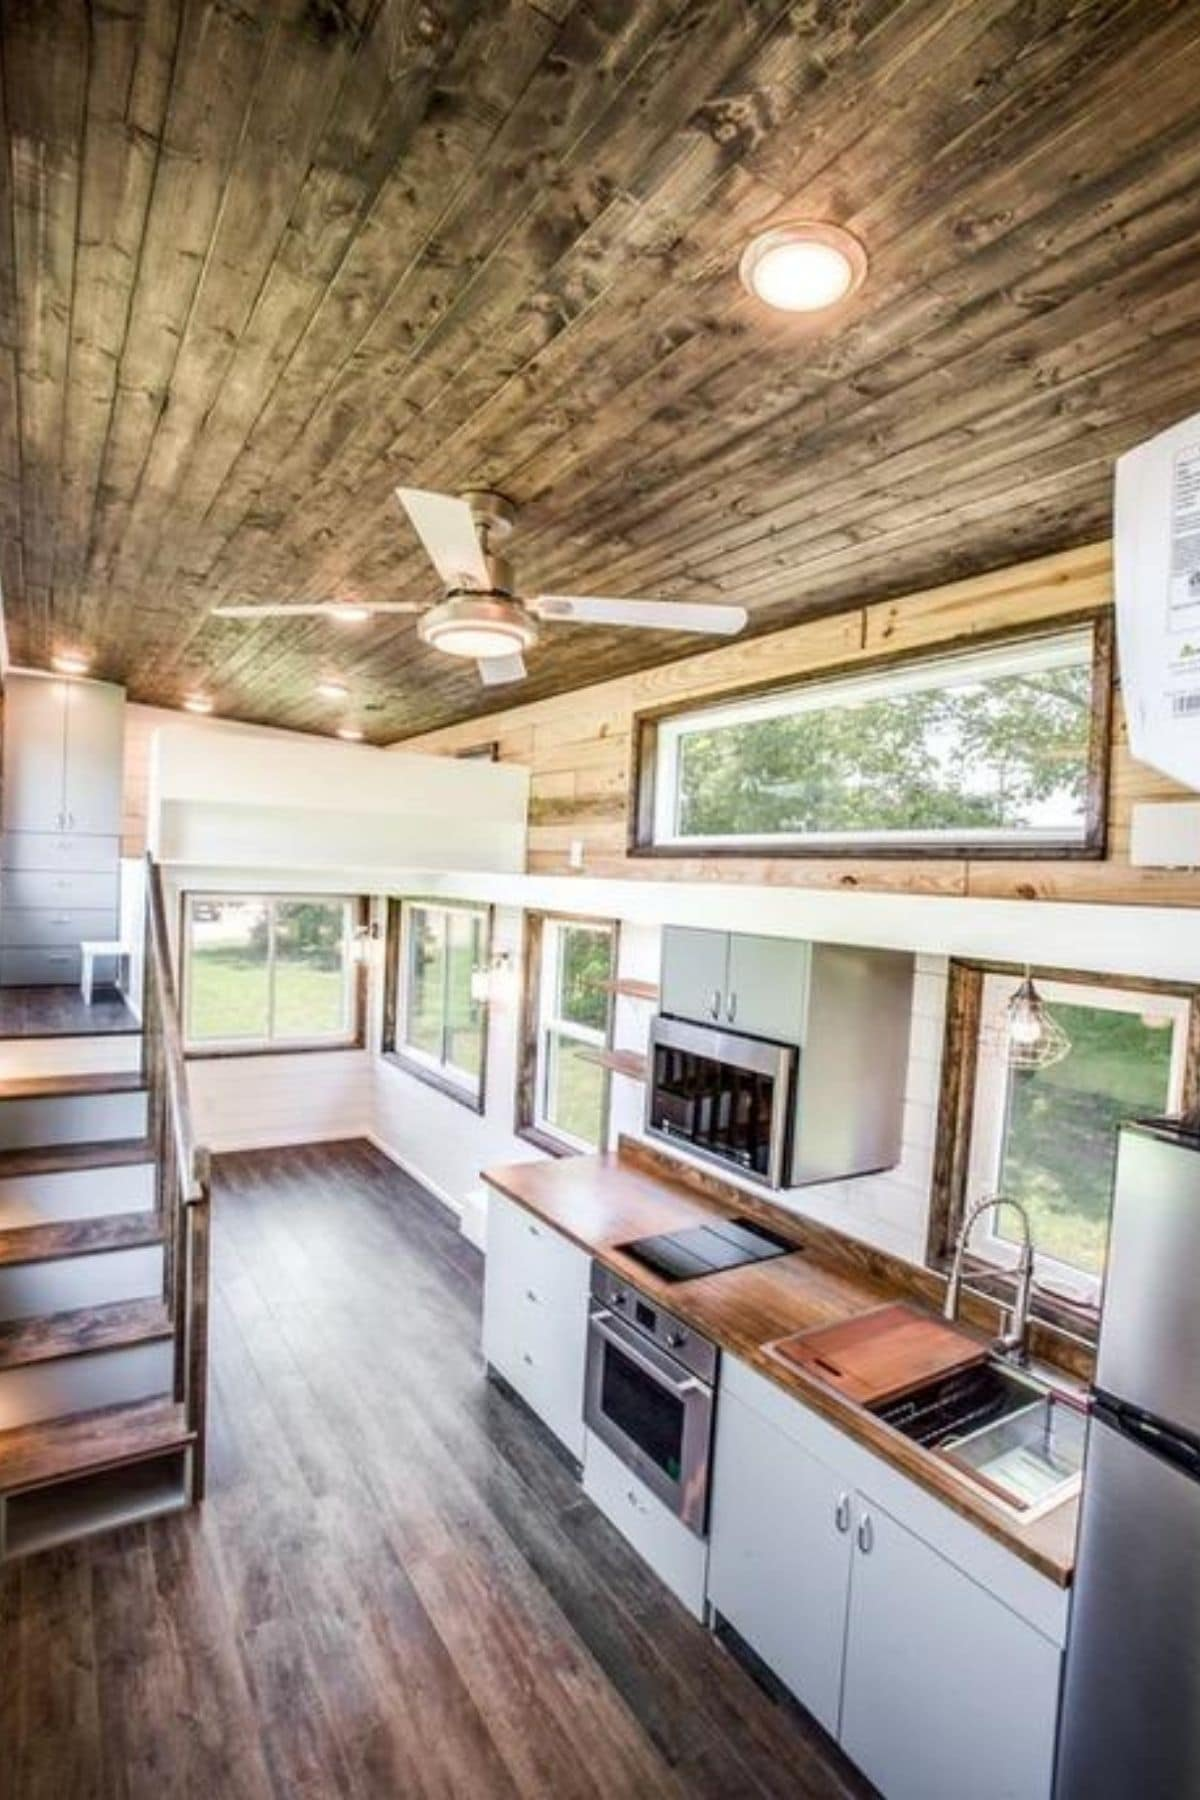 View from loft across top of tiny home showing shelving and ceiling fan